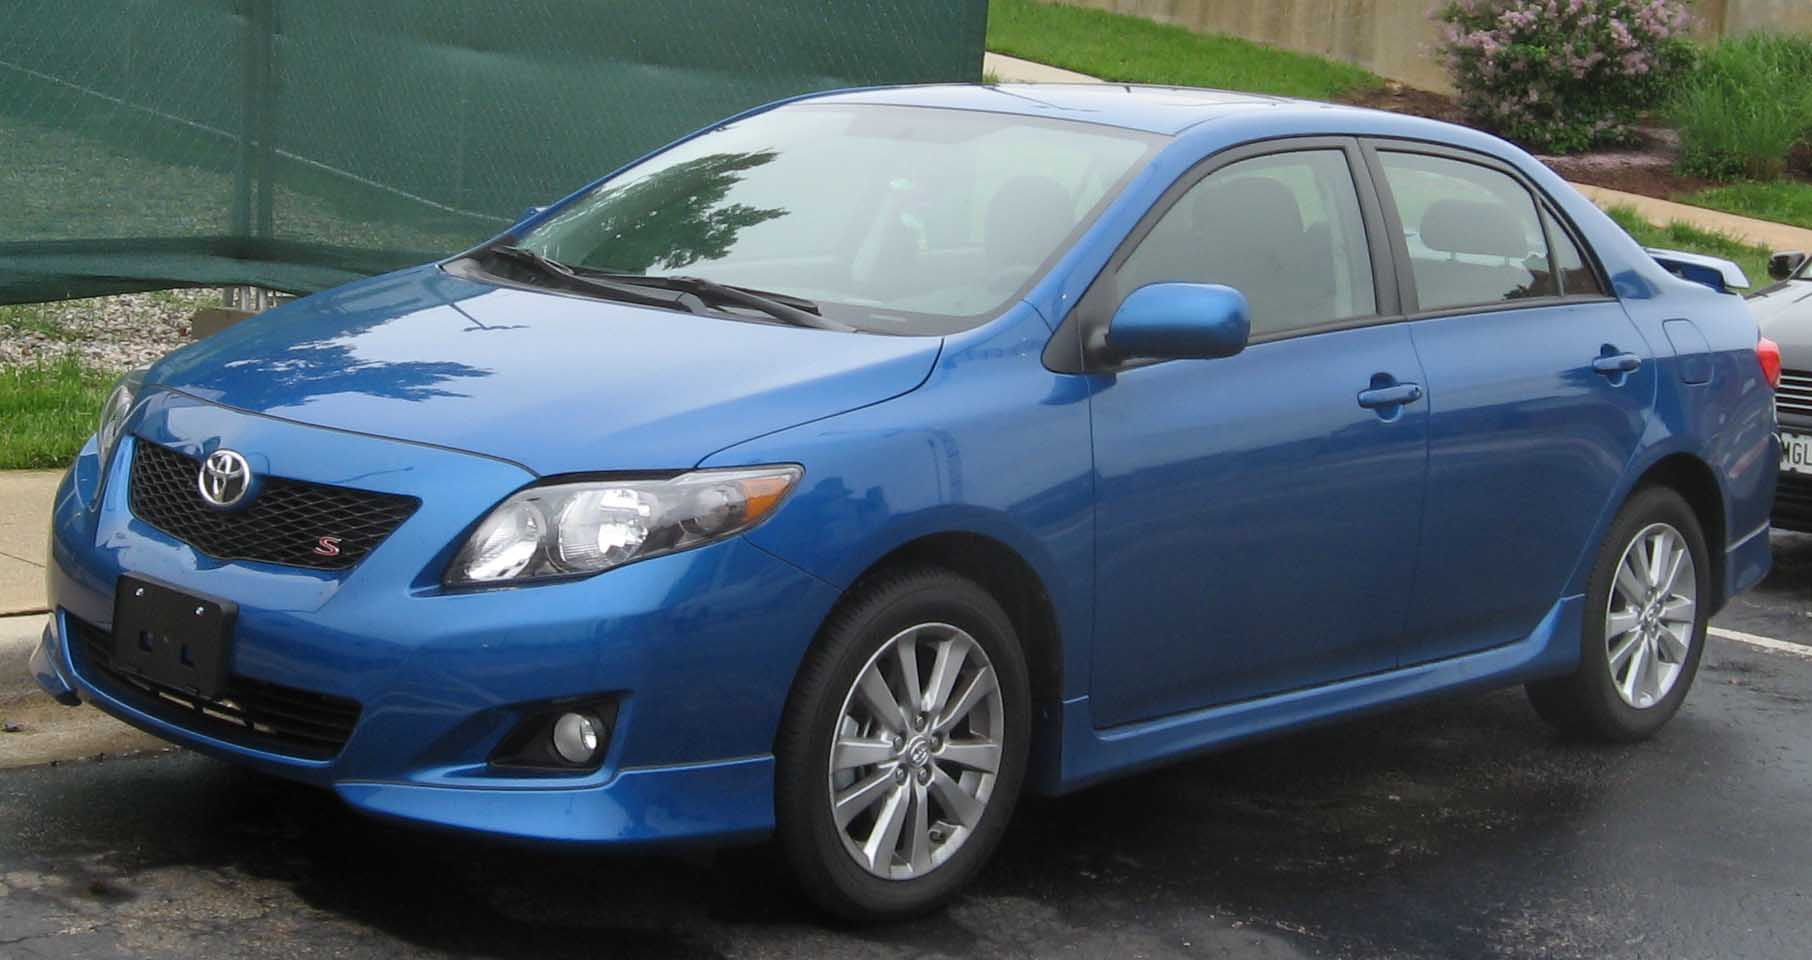 Toyota Corolla 2010 Photo - 1